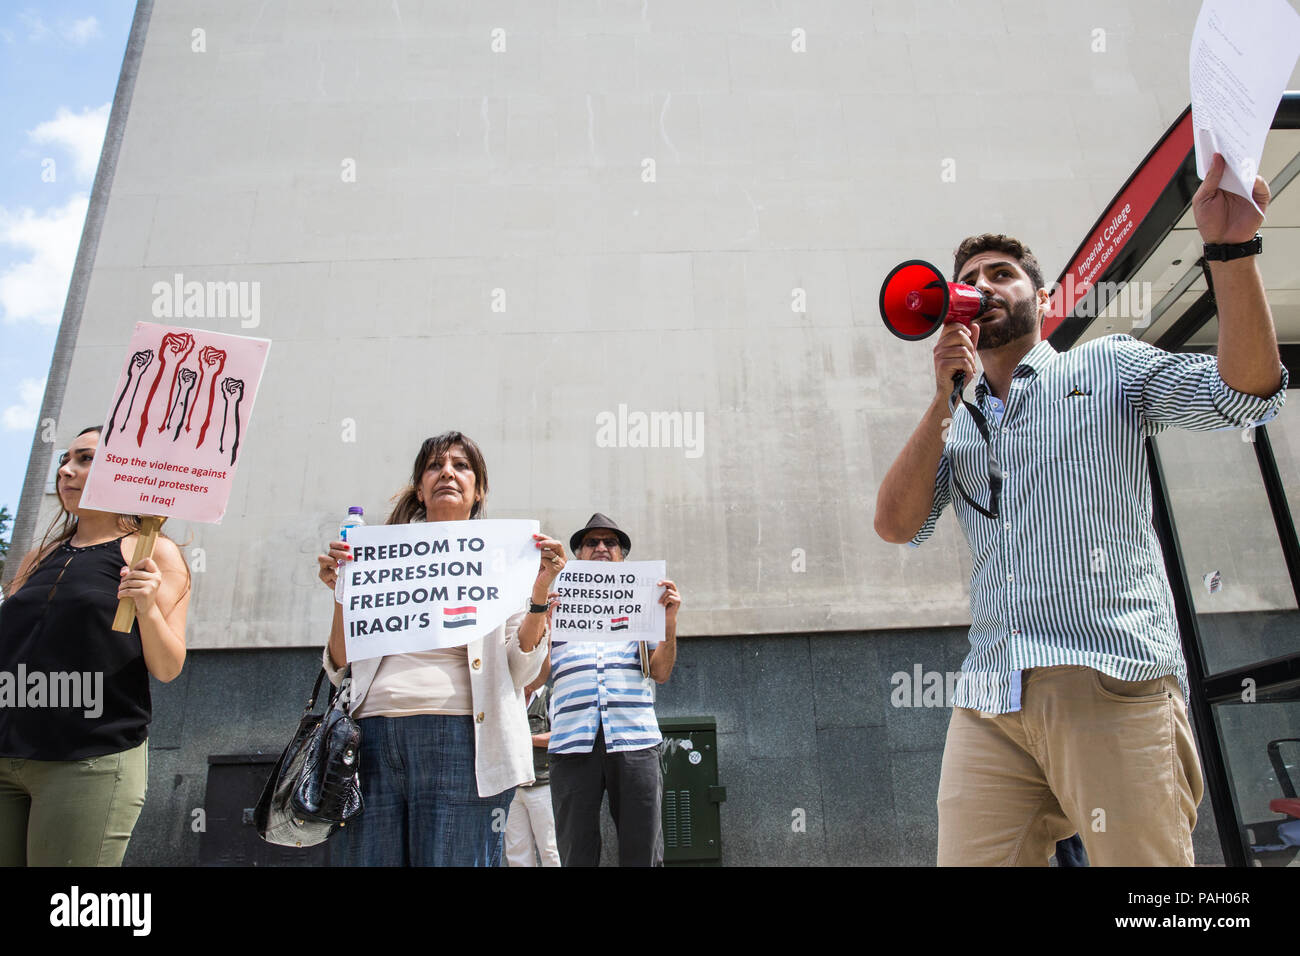 London, UK. 23rd July, 2018. Members of the Iraqi community with no particular political, religious or tribal affiliation protest outside the Iraqi embassy to draw attention to the Iraqi government's brutal handling of recent protests in Iraq to demand better employment, public services, education, electricity and other rights. Credit: Mark Kerrison/Alamy Live News Stock Photo